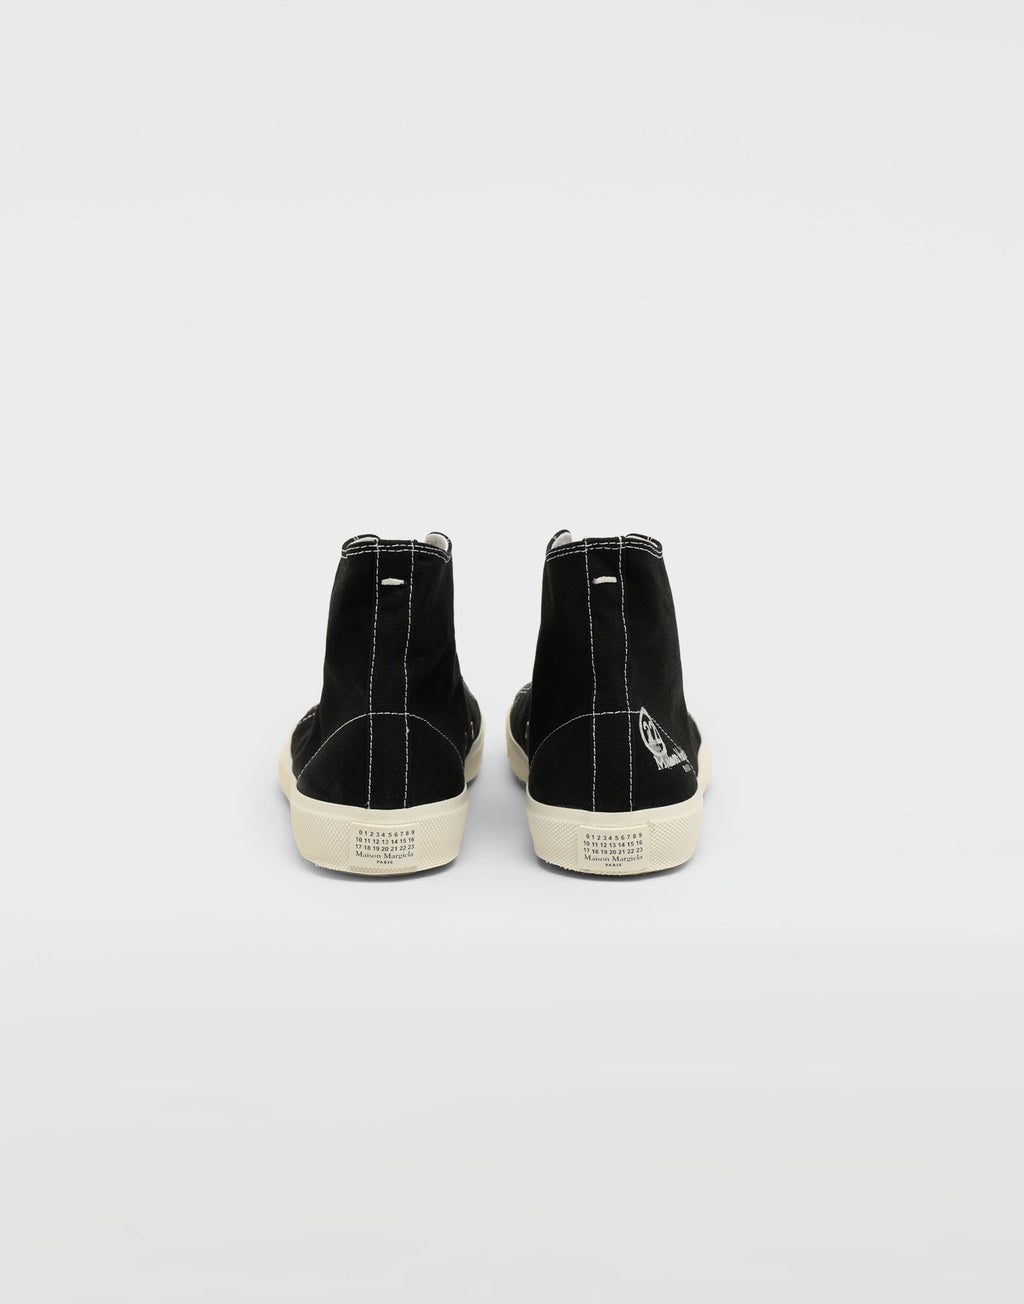 MAISON MARGIELA MEN HIGH TOP TABI SNEAKER